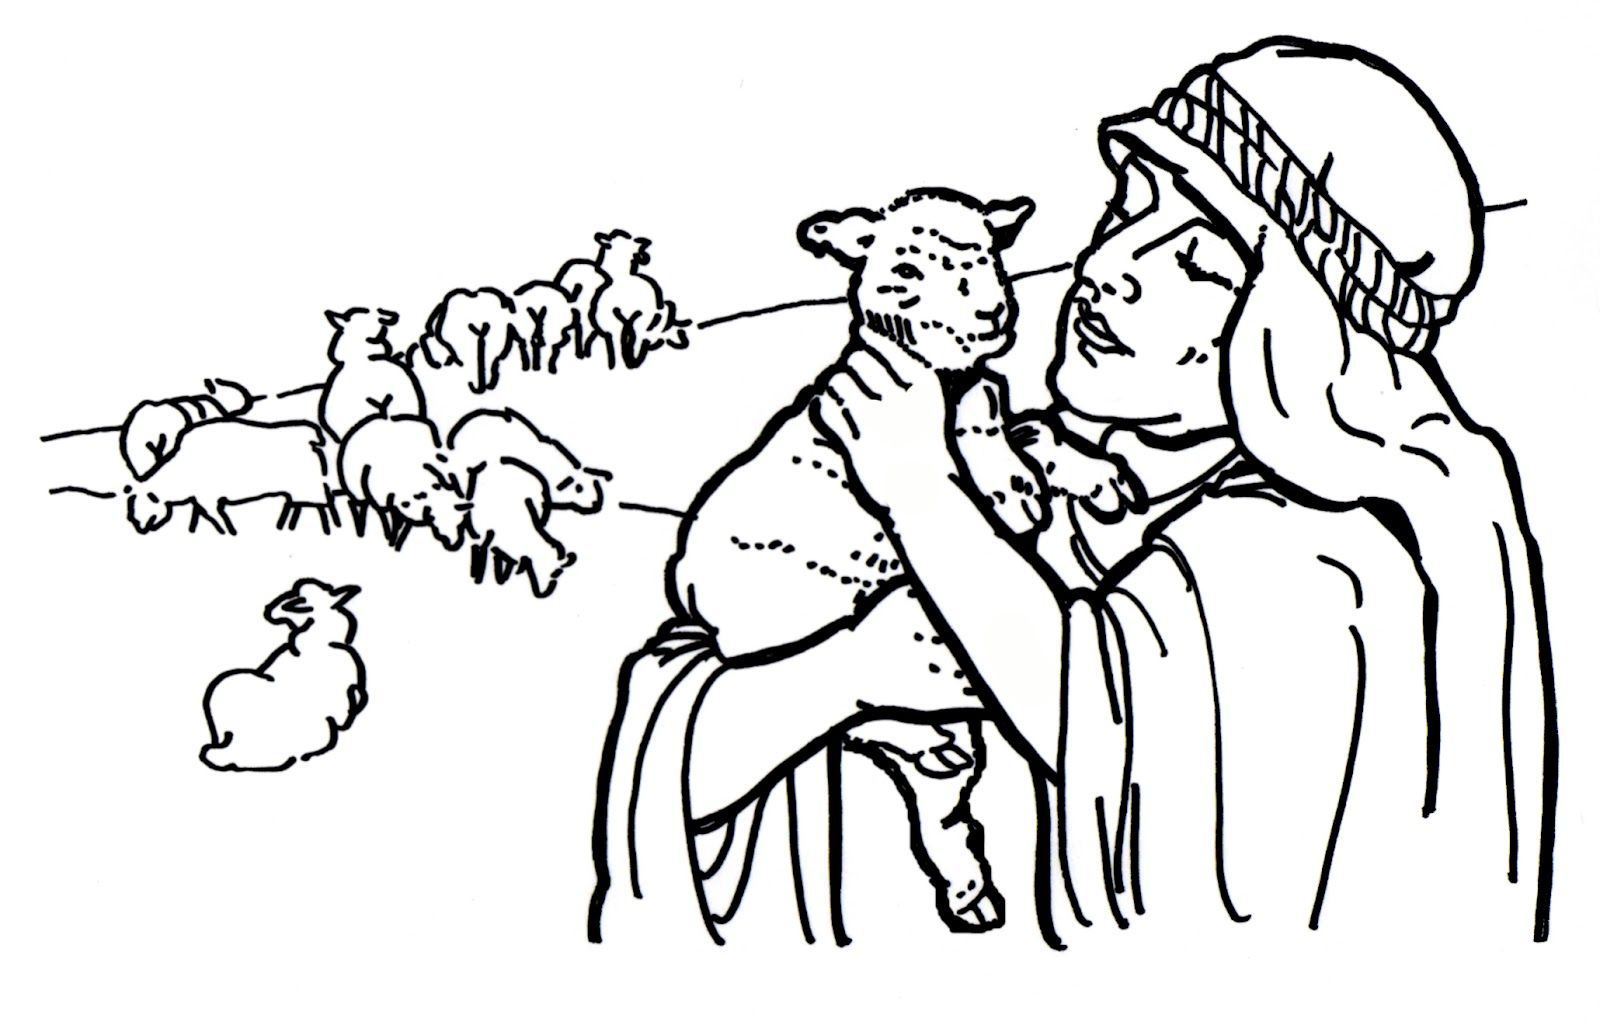 Good Shepherd and Lost Sheep Parable Coloring Pages | Karan\'s ...